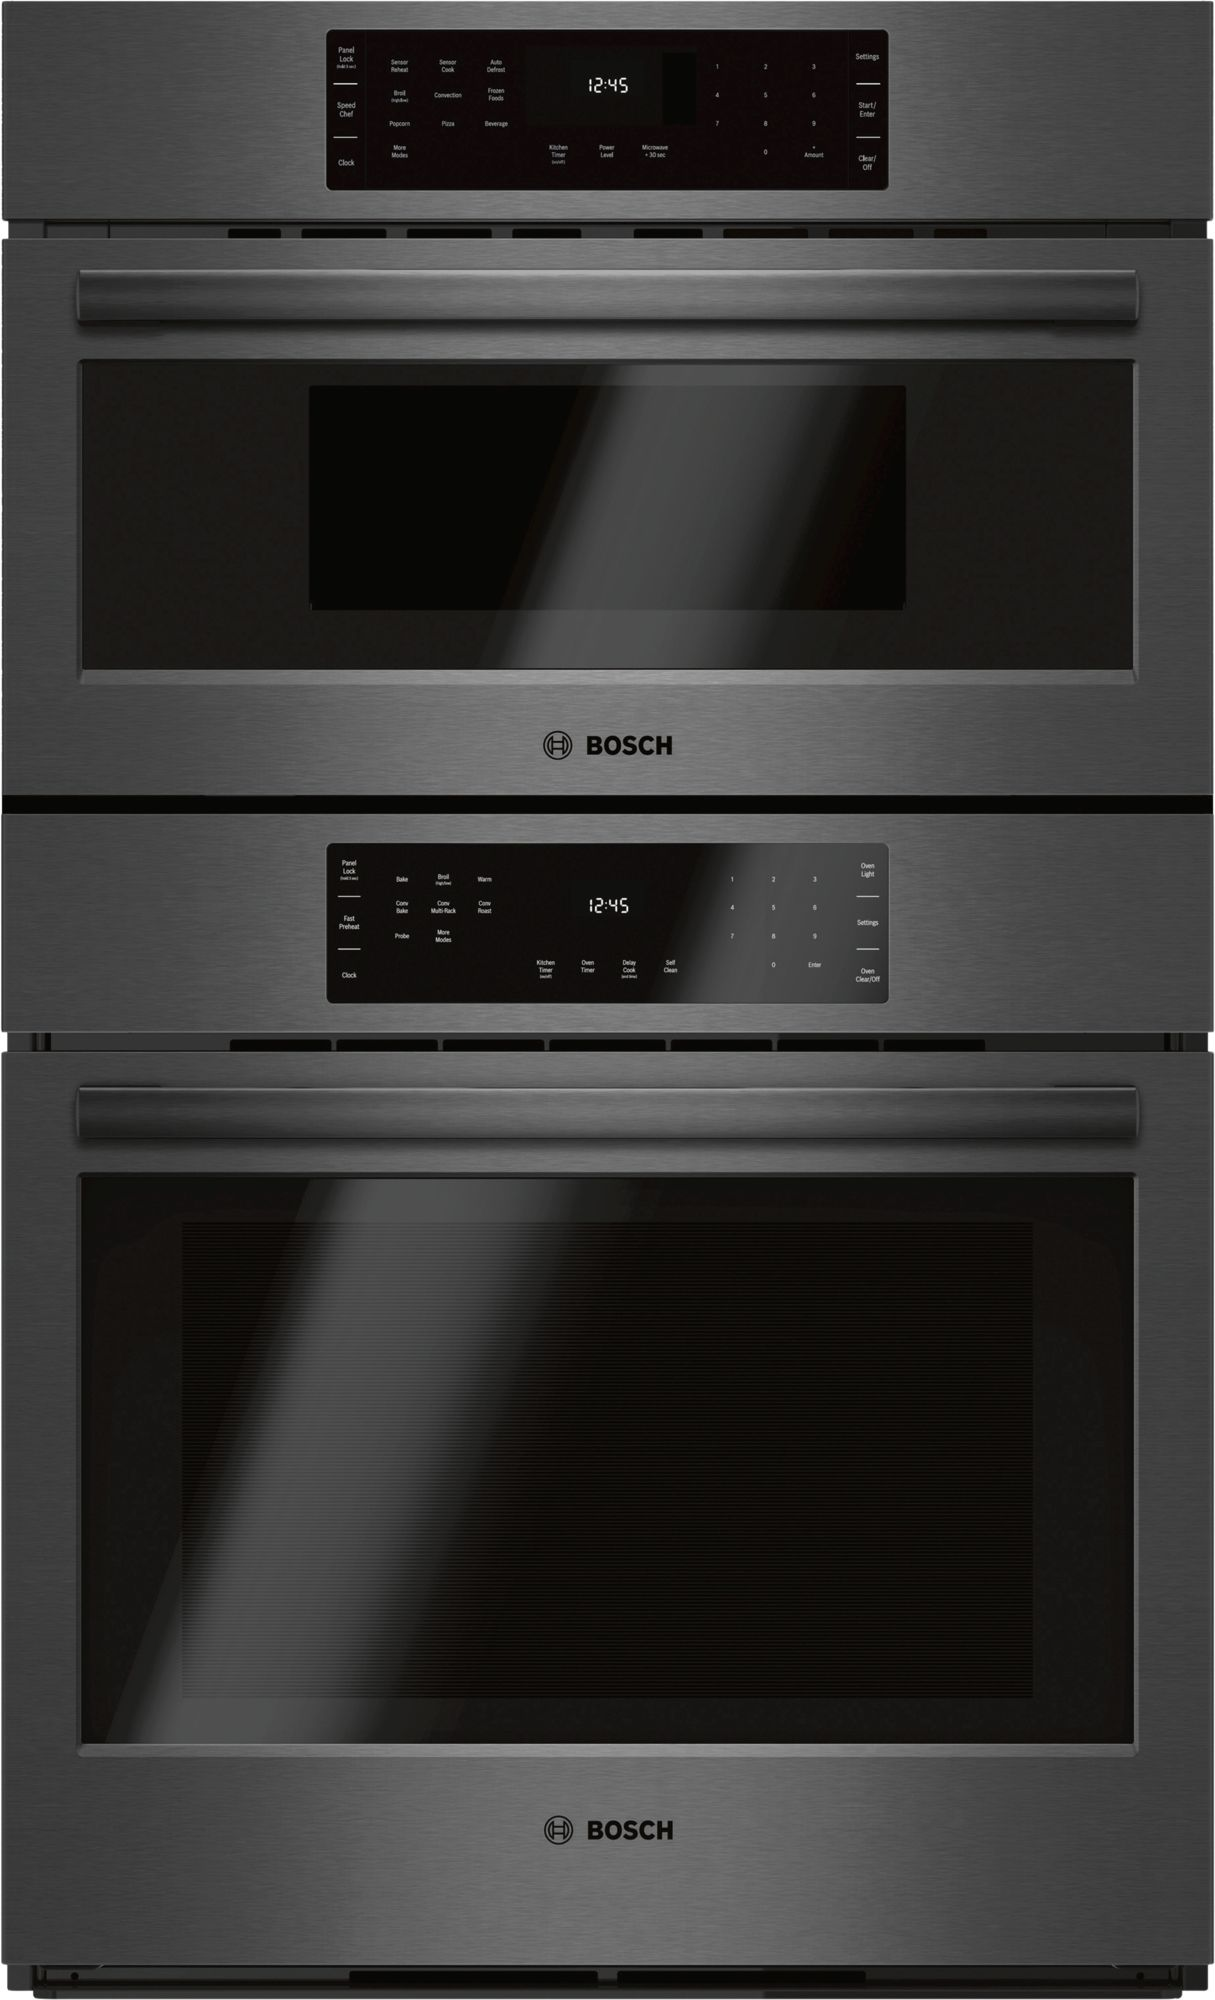 Bosch 800 Series 30 Sd Combination Oven Black Stainless Steel Hbl8742uc